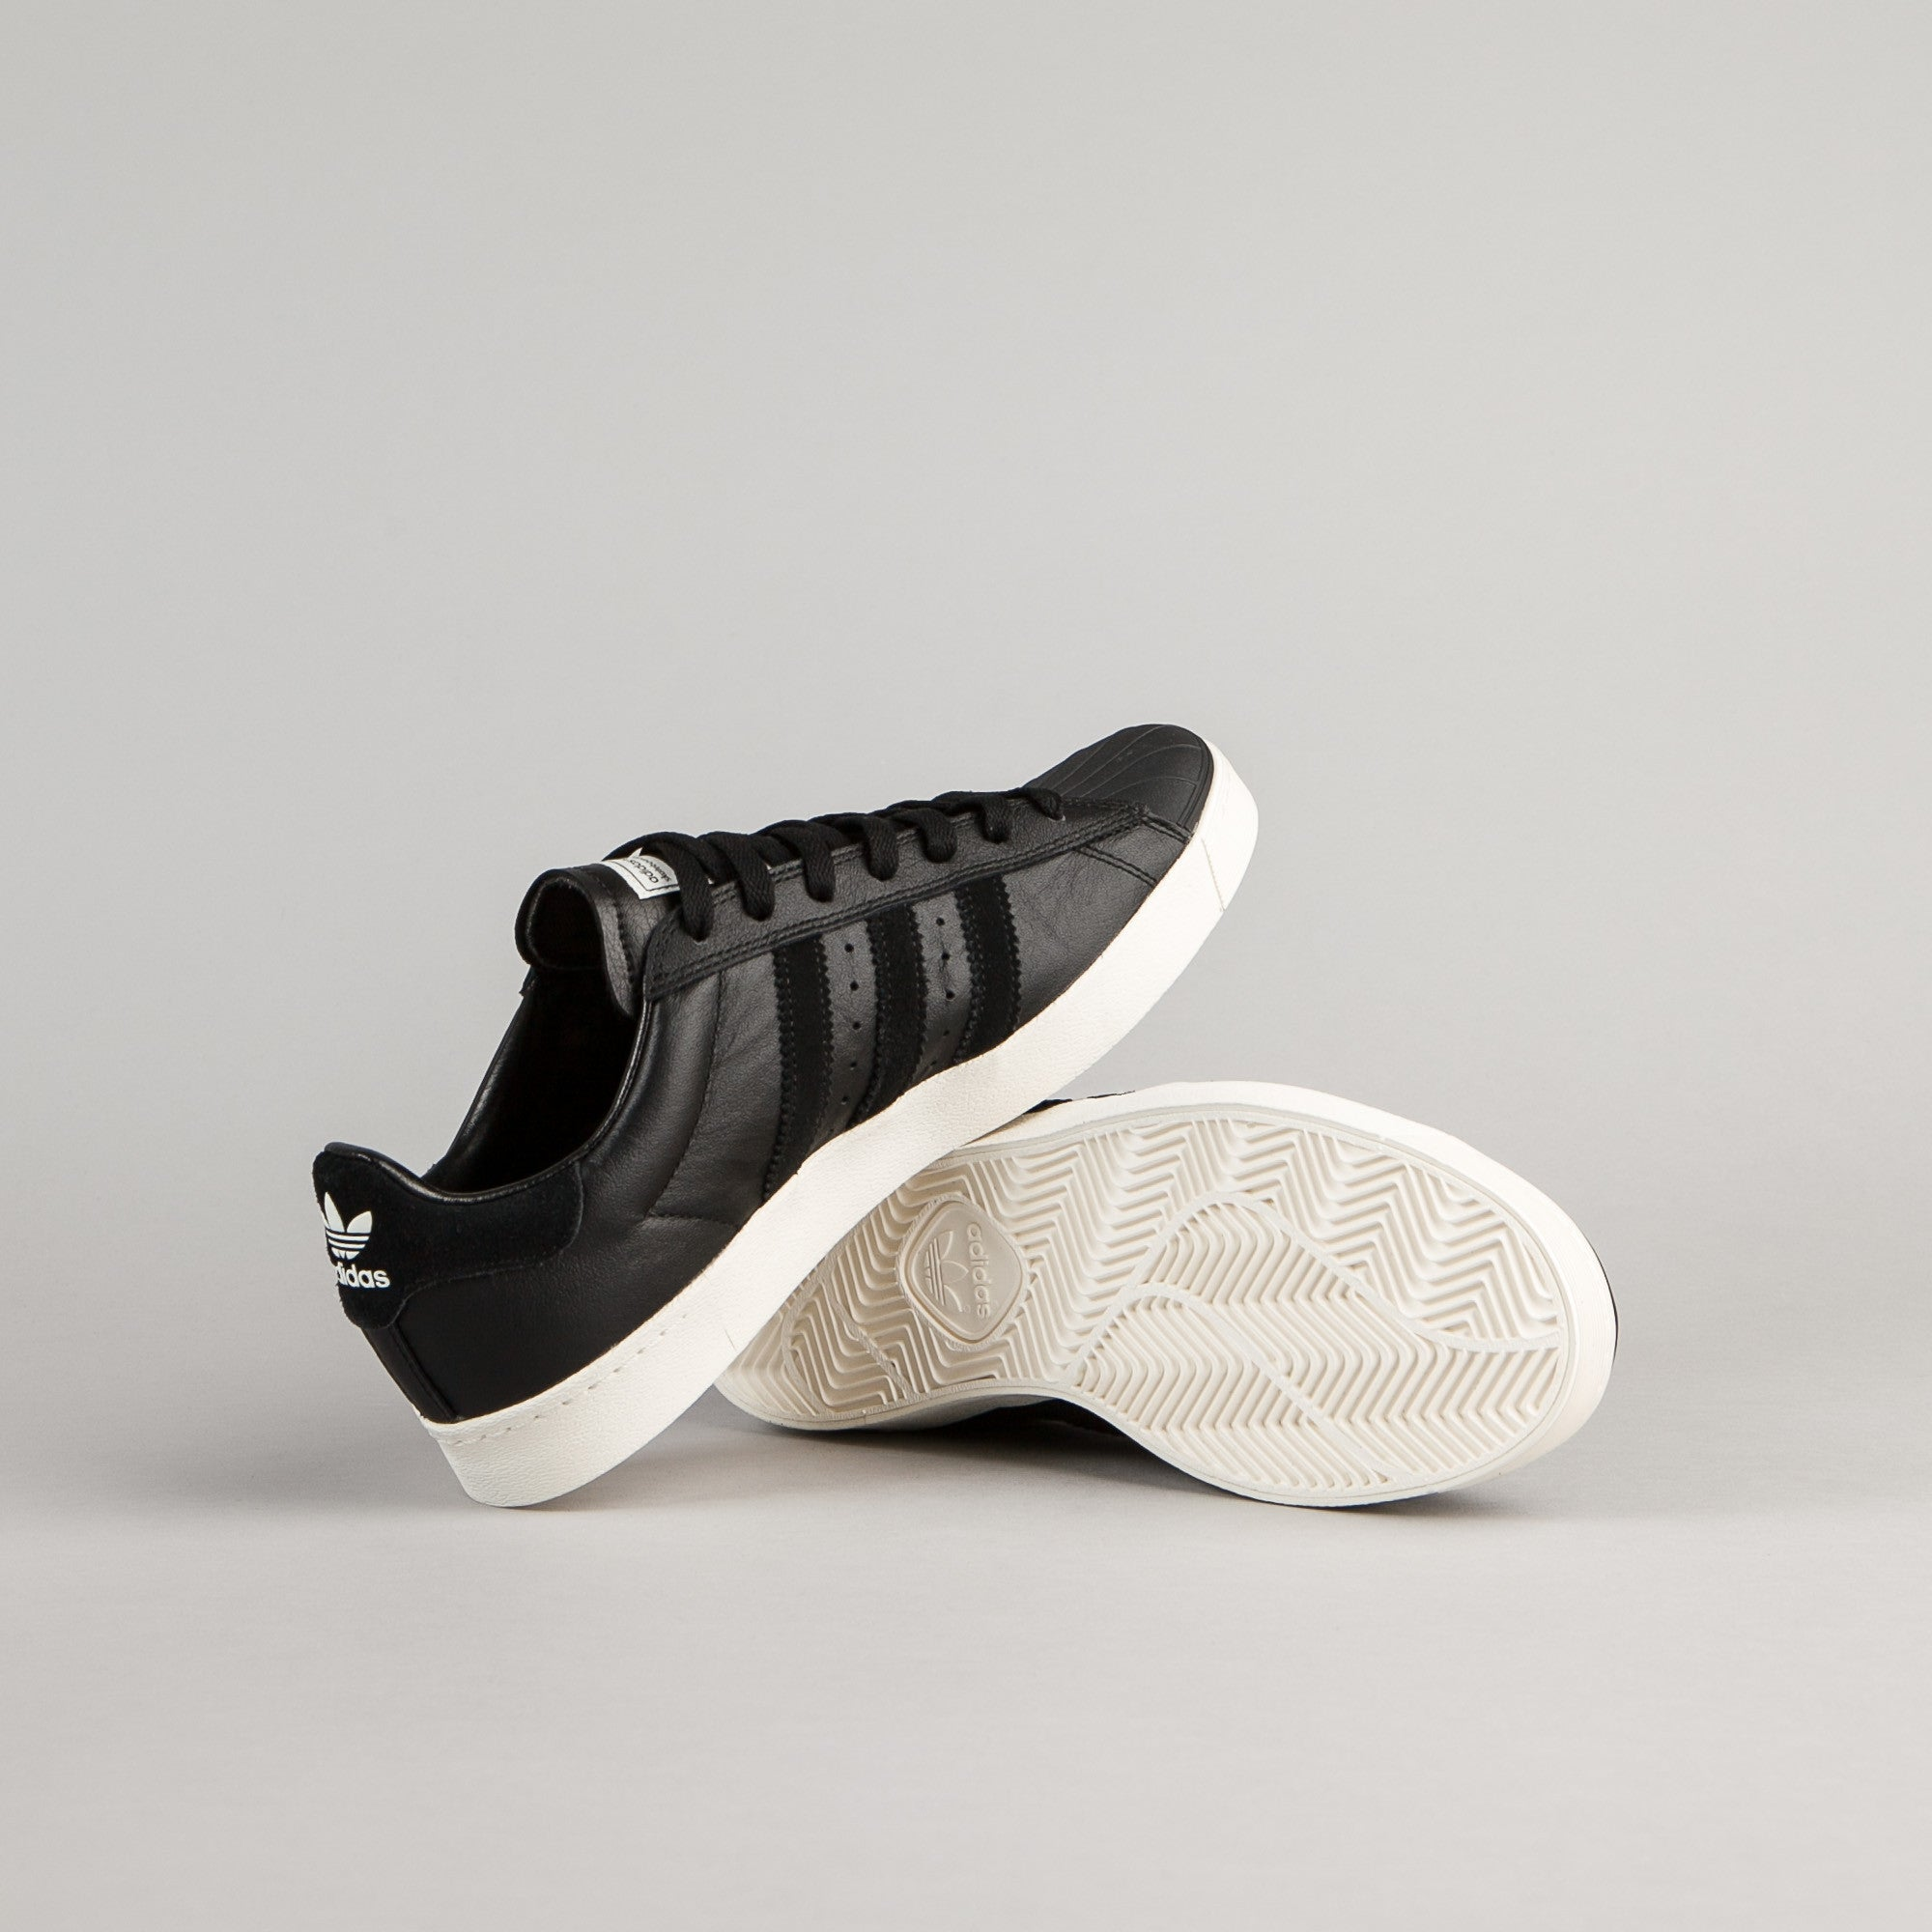 adidas Originals Superstar 2 White/Black/White 2 Zappos